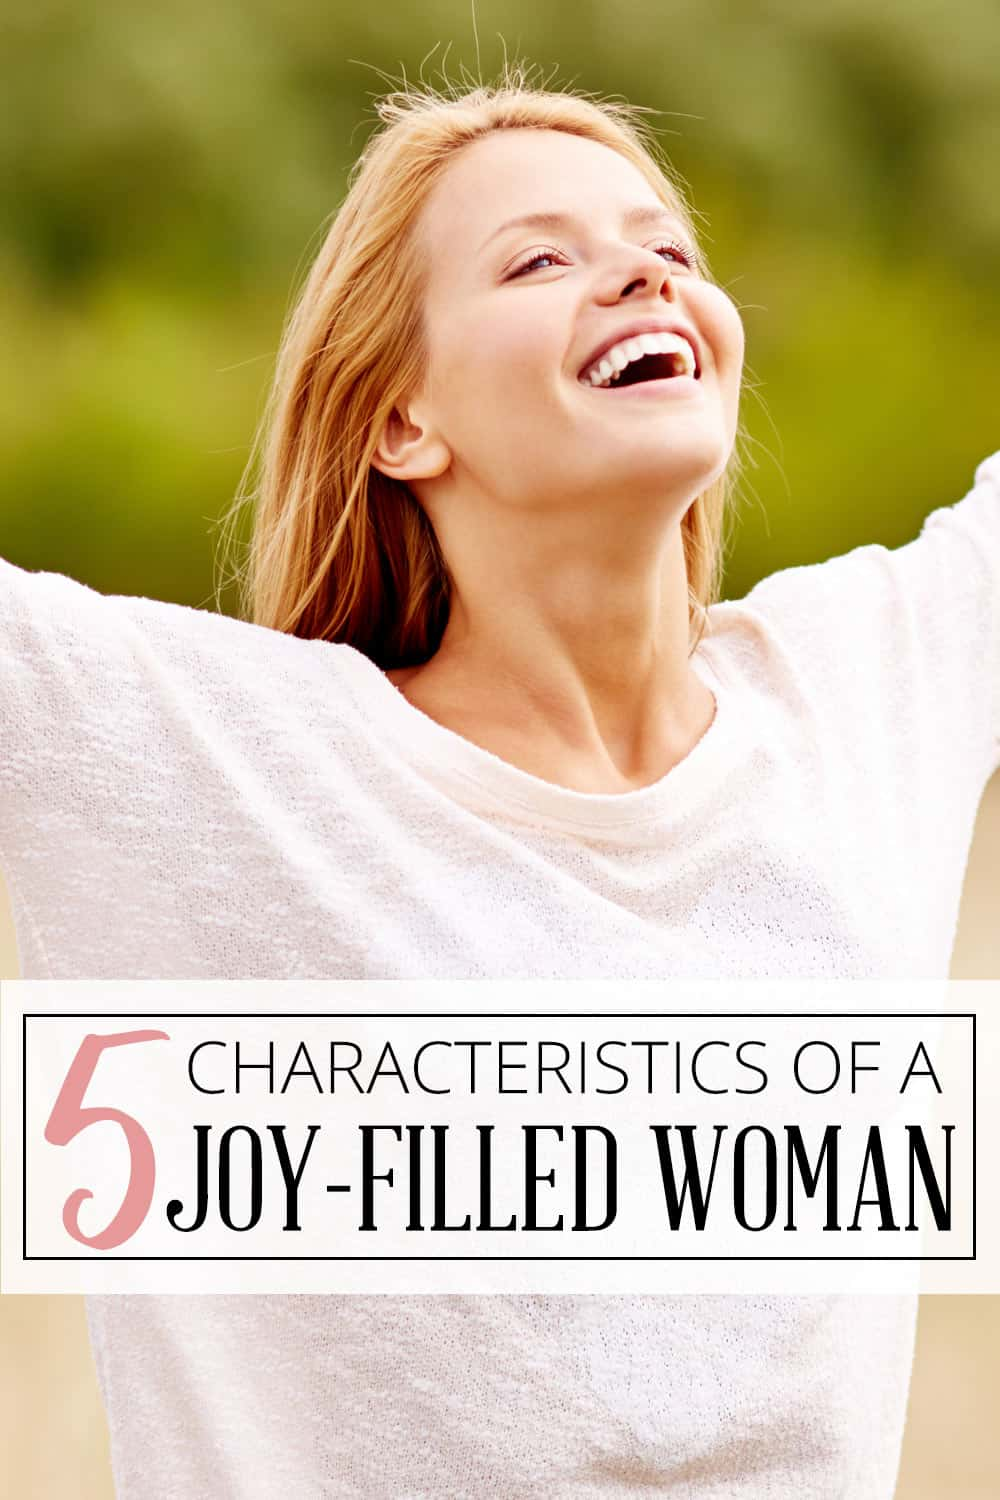 5 Characteristics of a Joy-Filled Woman